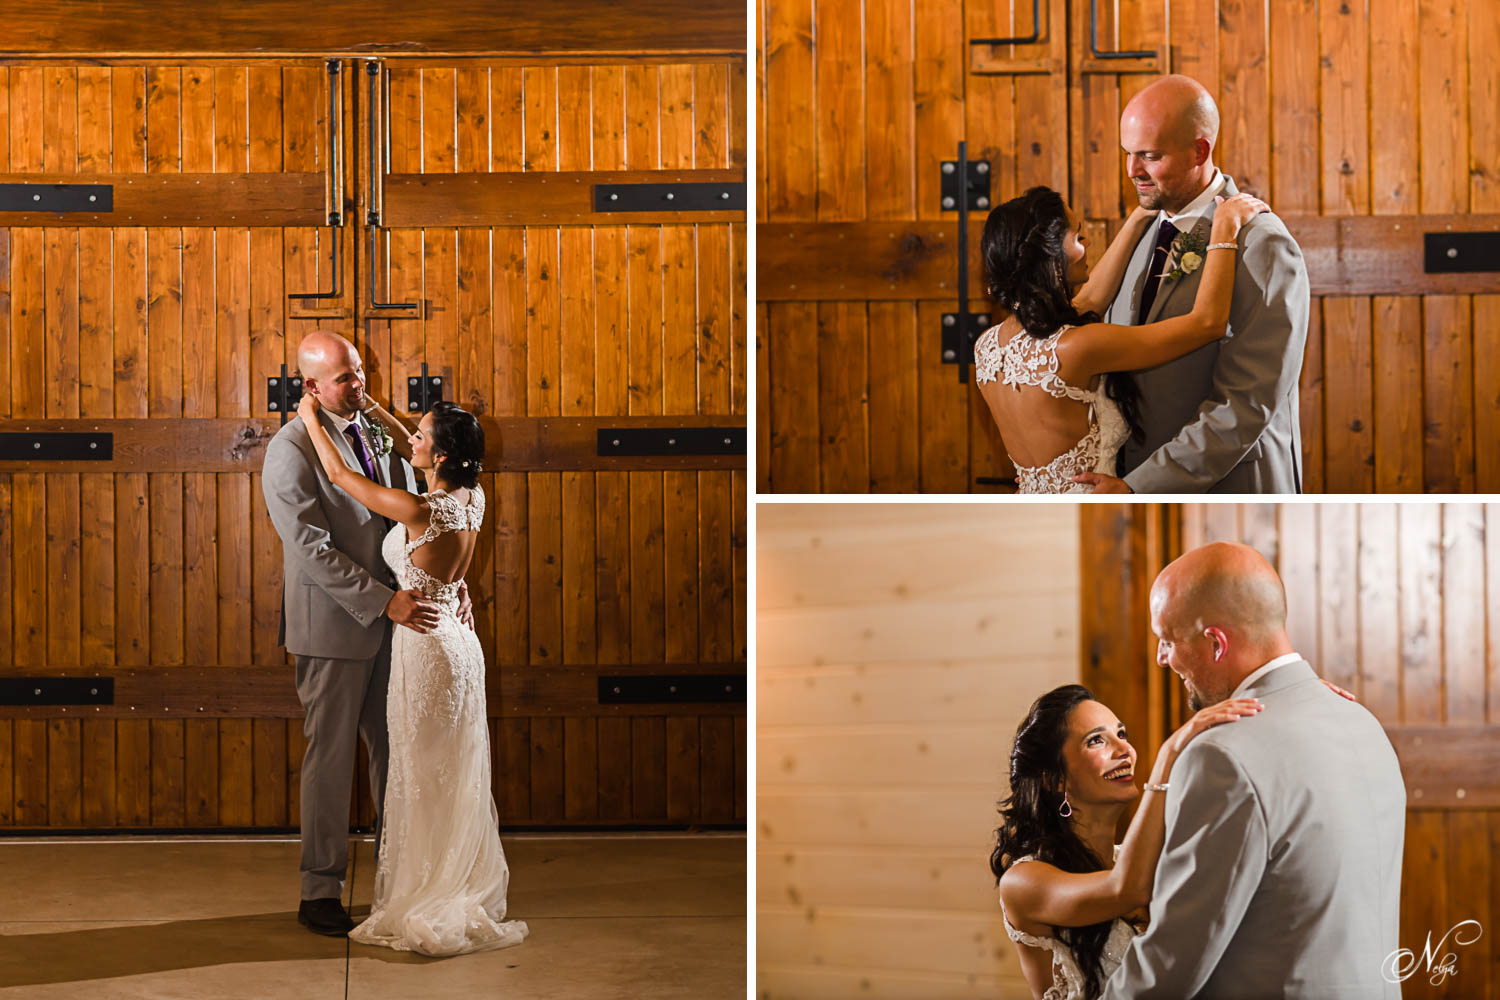 new couple's first dance in front of the huge handmade wooden doors at Hiwassee River Weddings